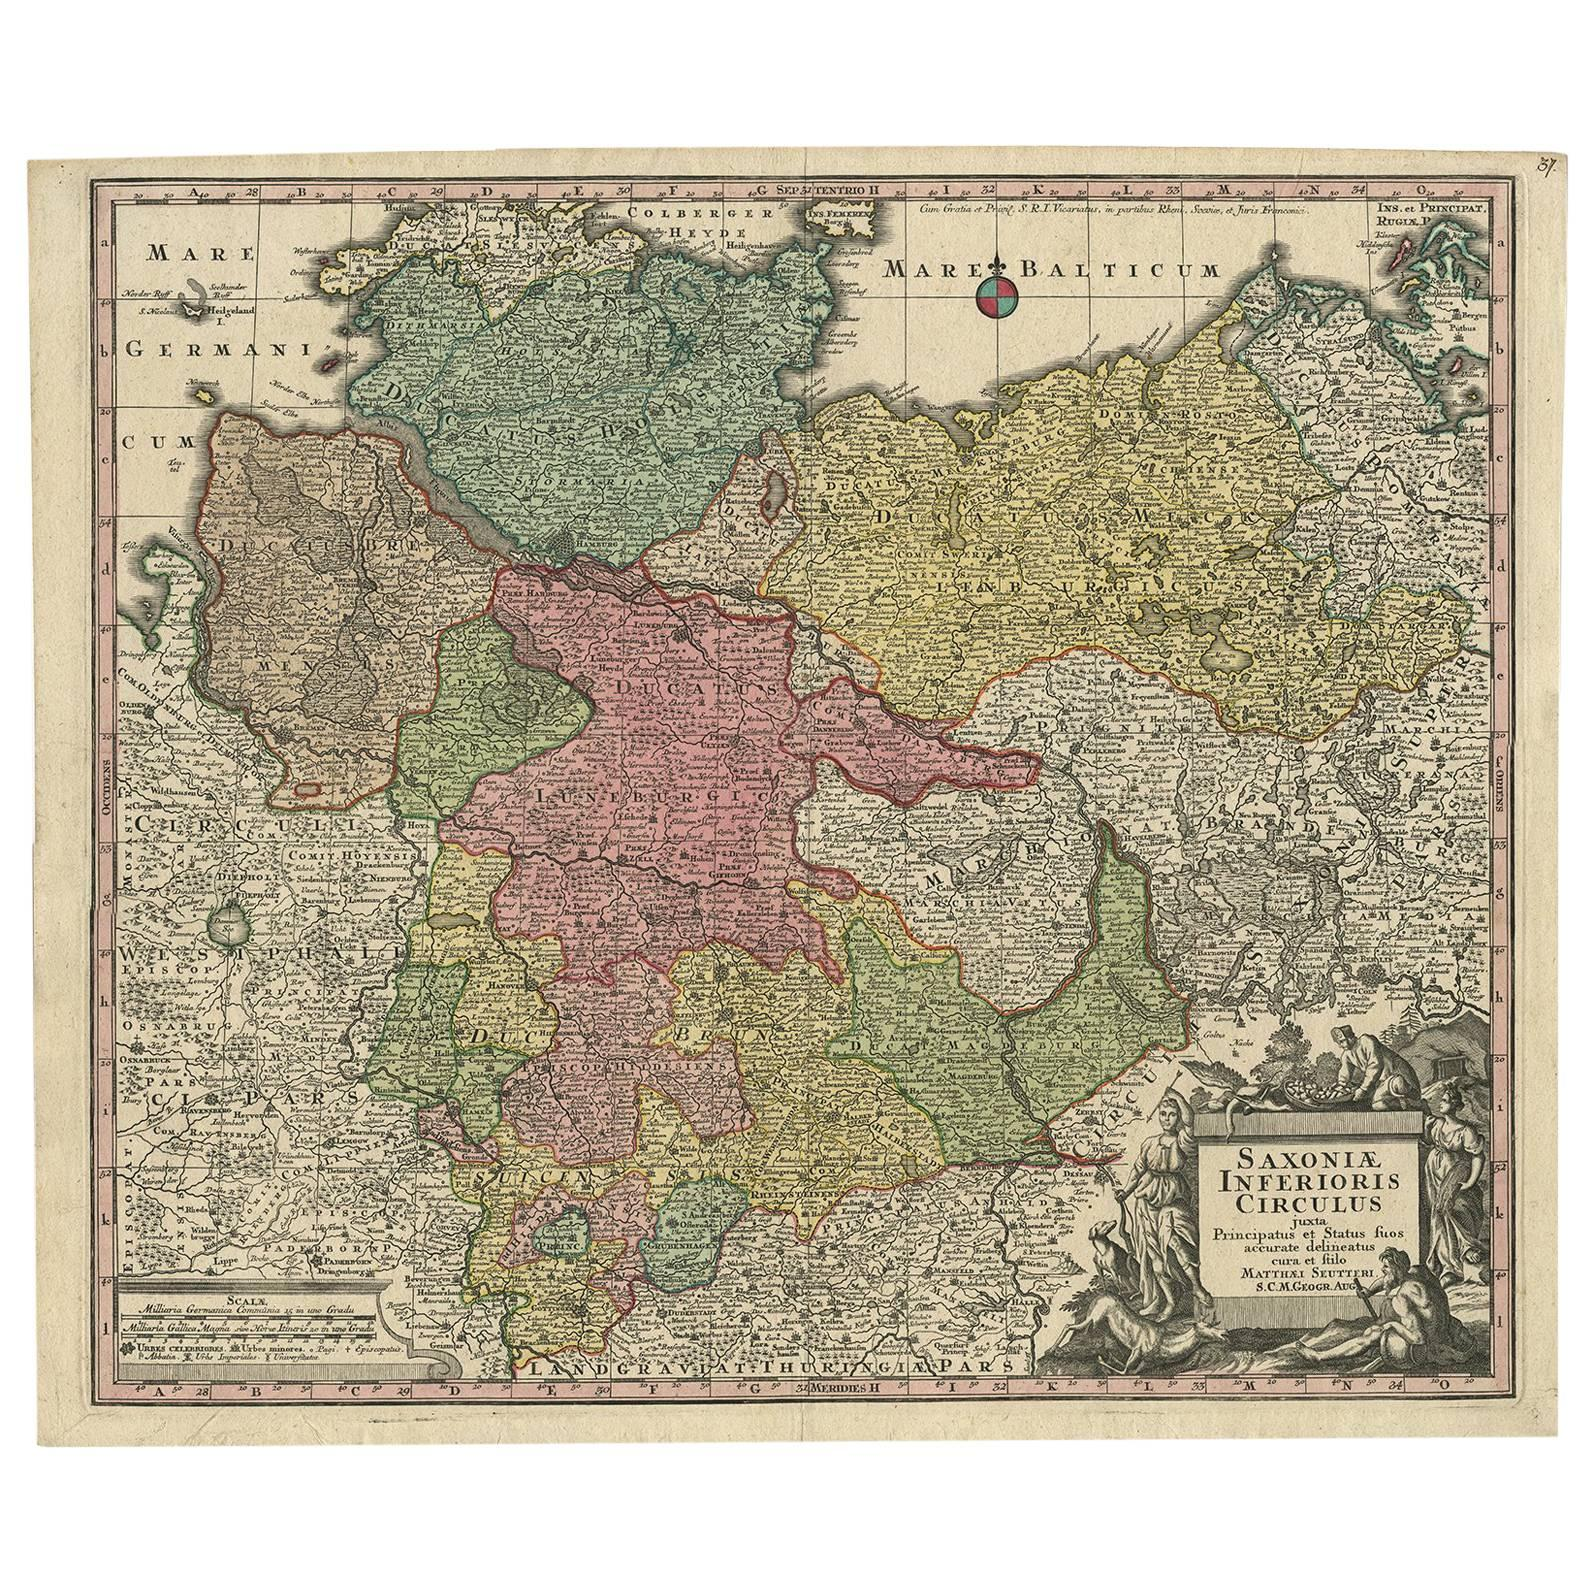 Maps Oldenburg Antique Map Of Denmark And Oldenburg Germany By A Ortelius Circa 1598